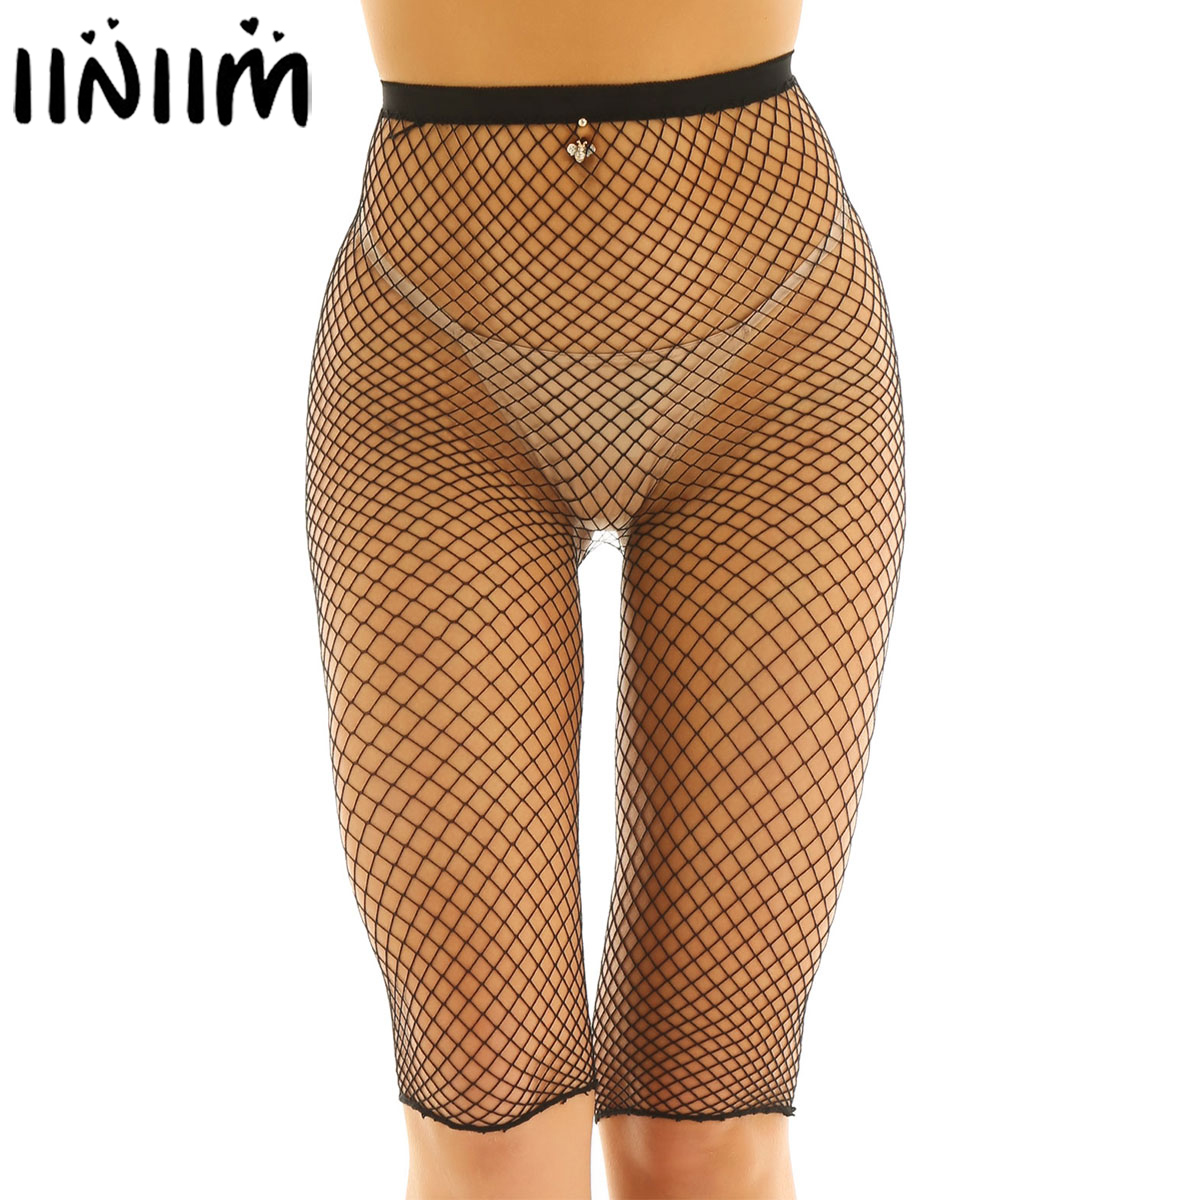 Womens Fishnet Exotic Pants <font><b>Transparent</b></font> See Through <font><b>Sexy</b></font> Underwear Tights High Waisted <font><b>Legging</b></font> Half Pants for Night Clubwear image